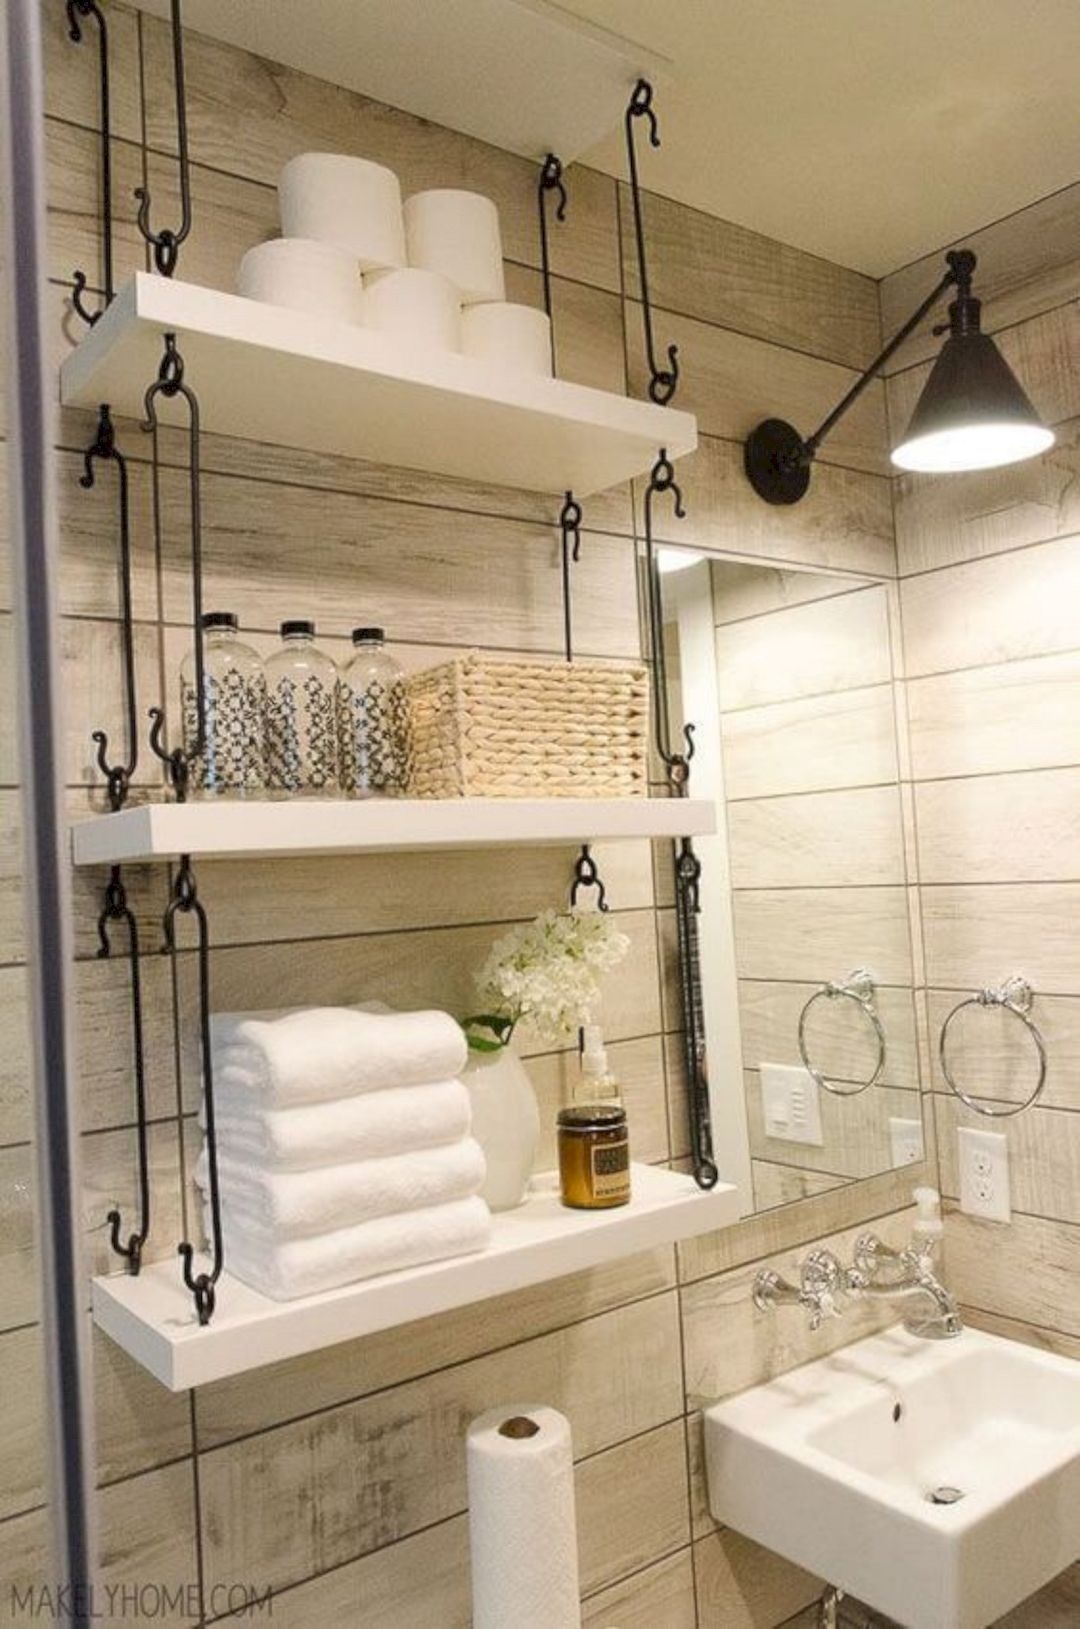 17 Small Townhouse Interior Design Ideas Small Bathroom Storage